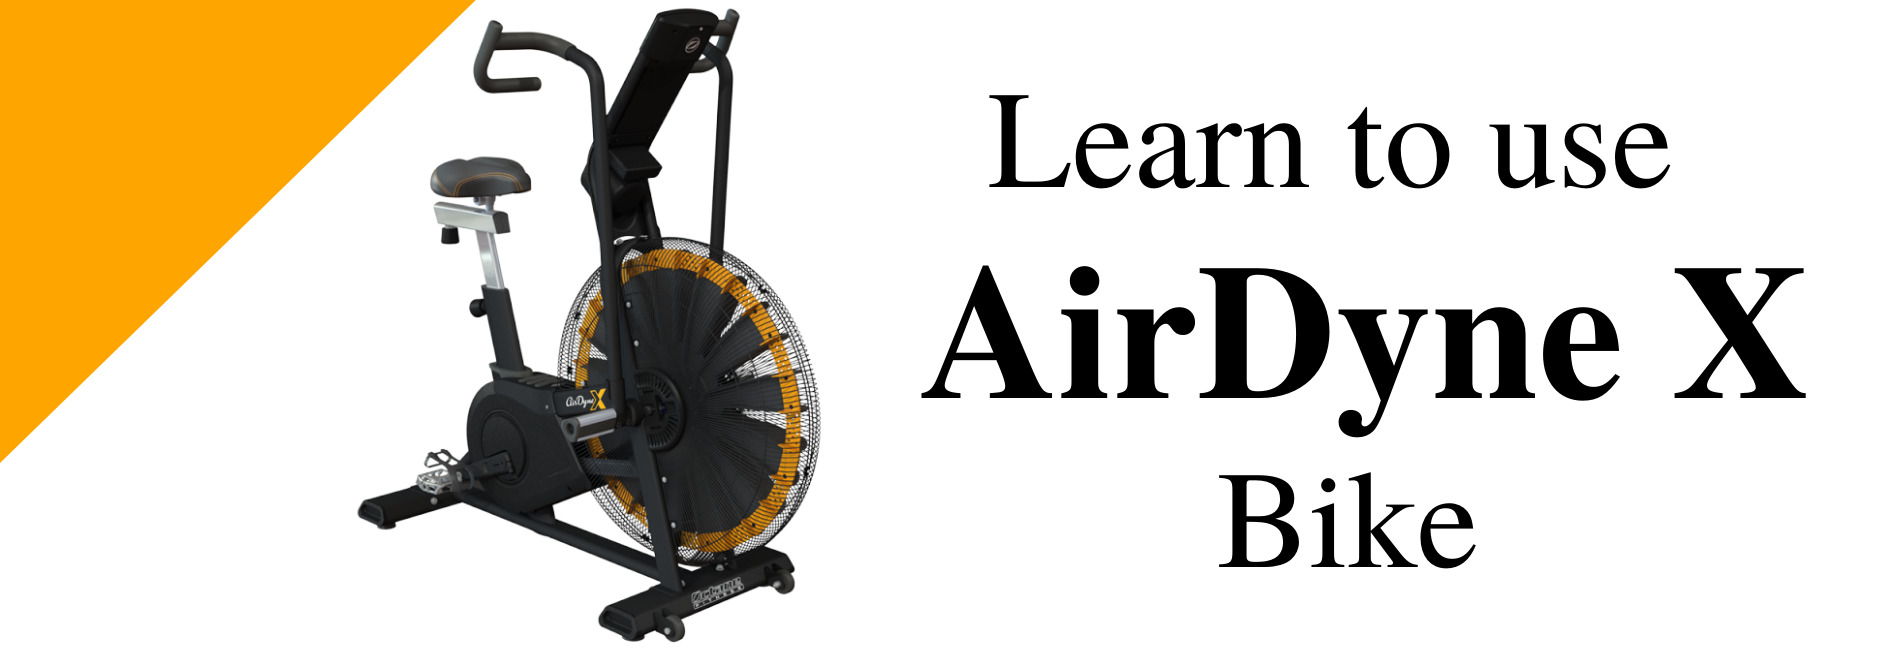 Learn to use the AirDyne X Bike using GIFs.